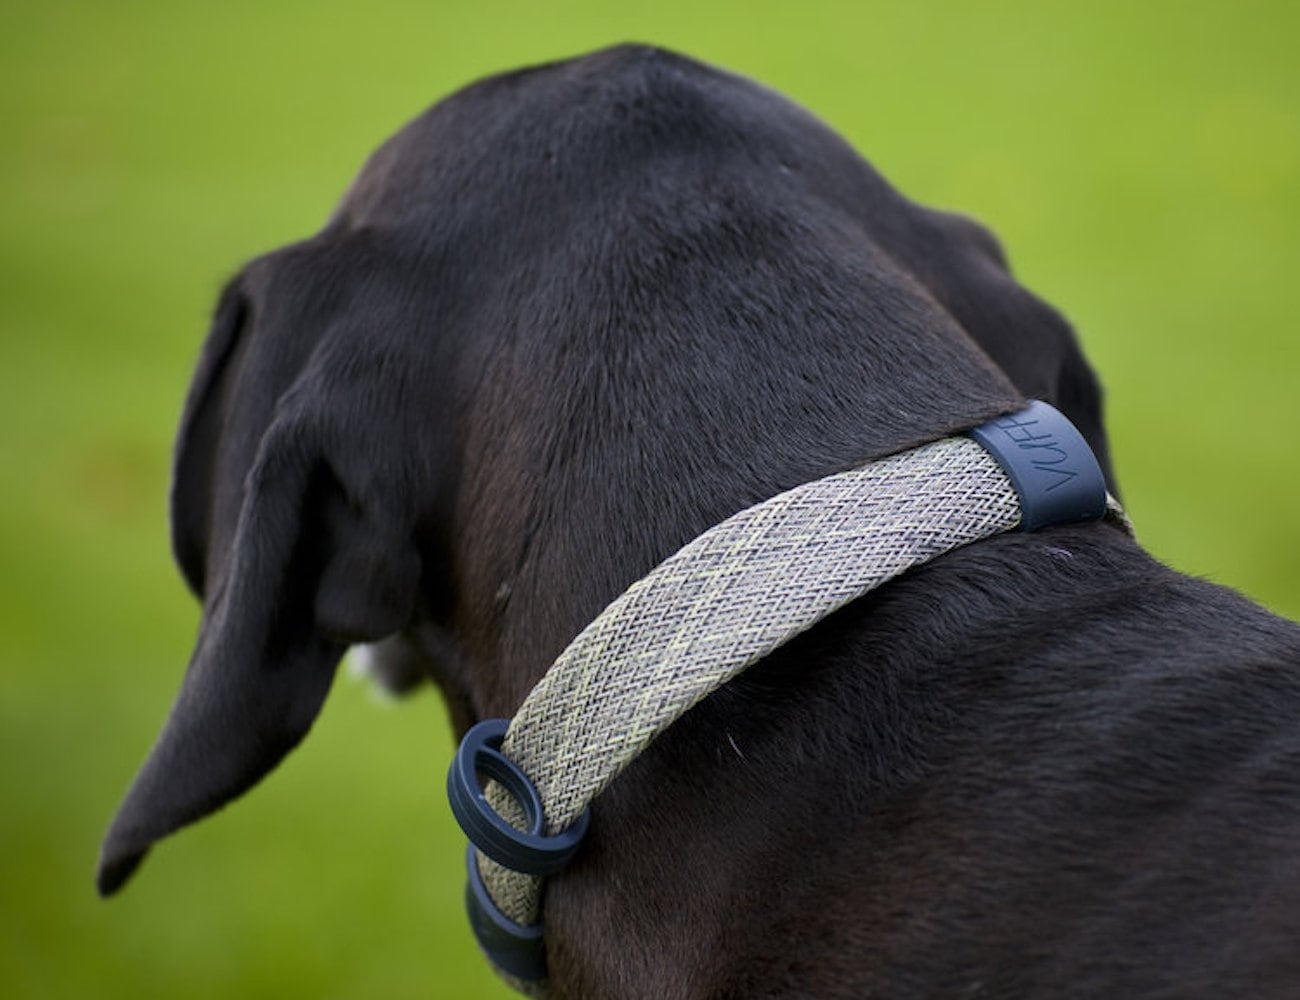 Vuff CollarLess Fixed Loop Dog Collar